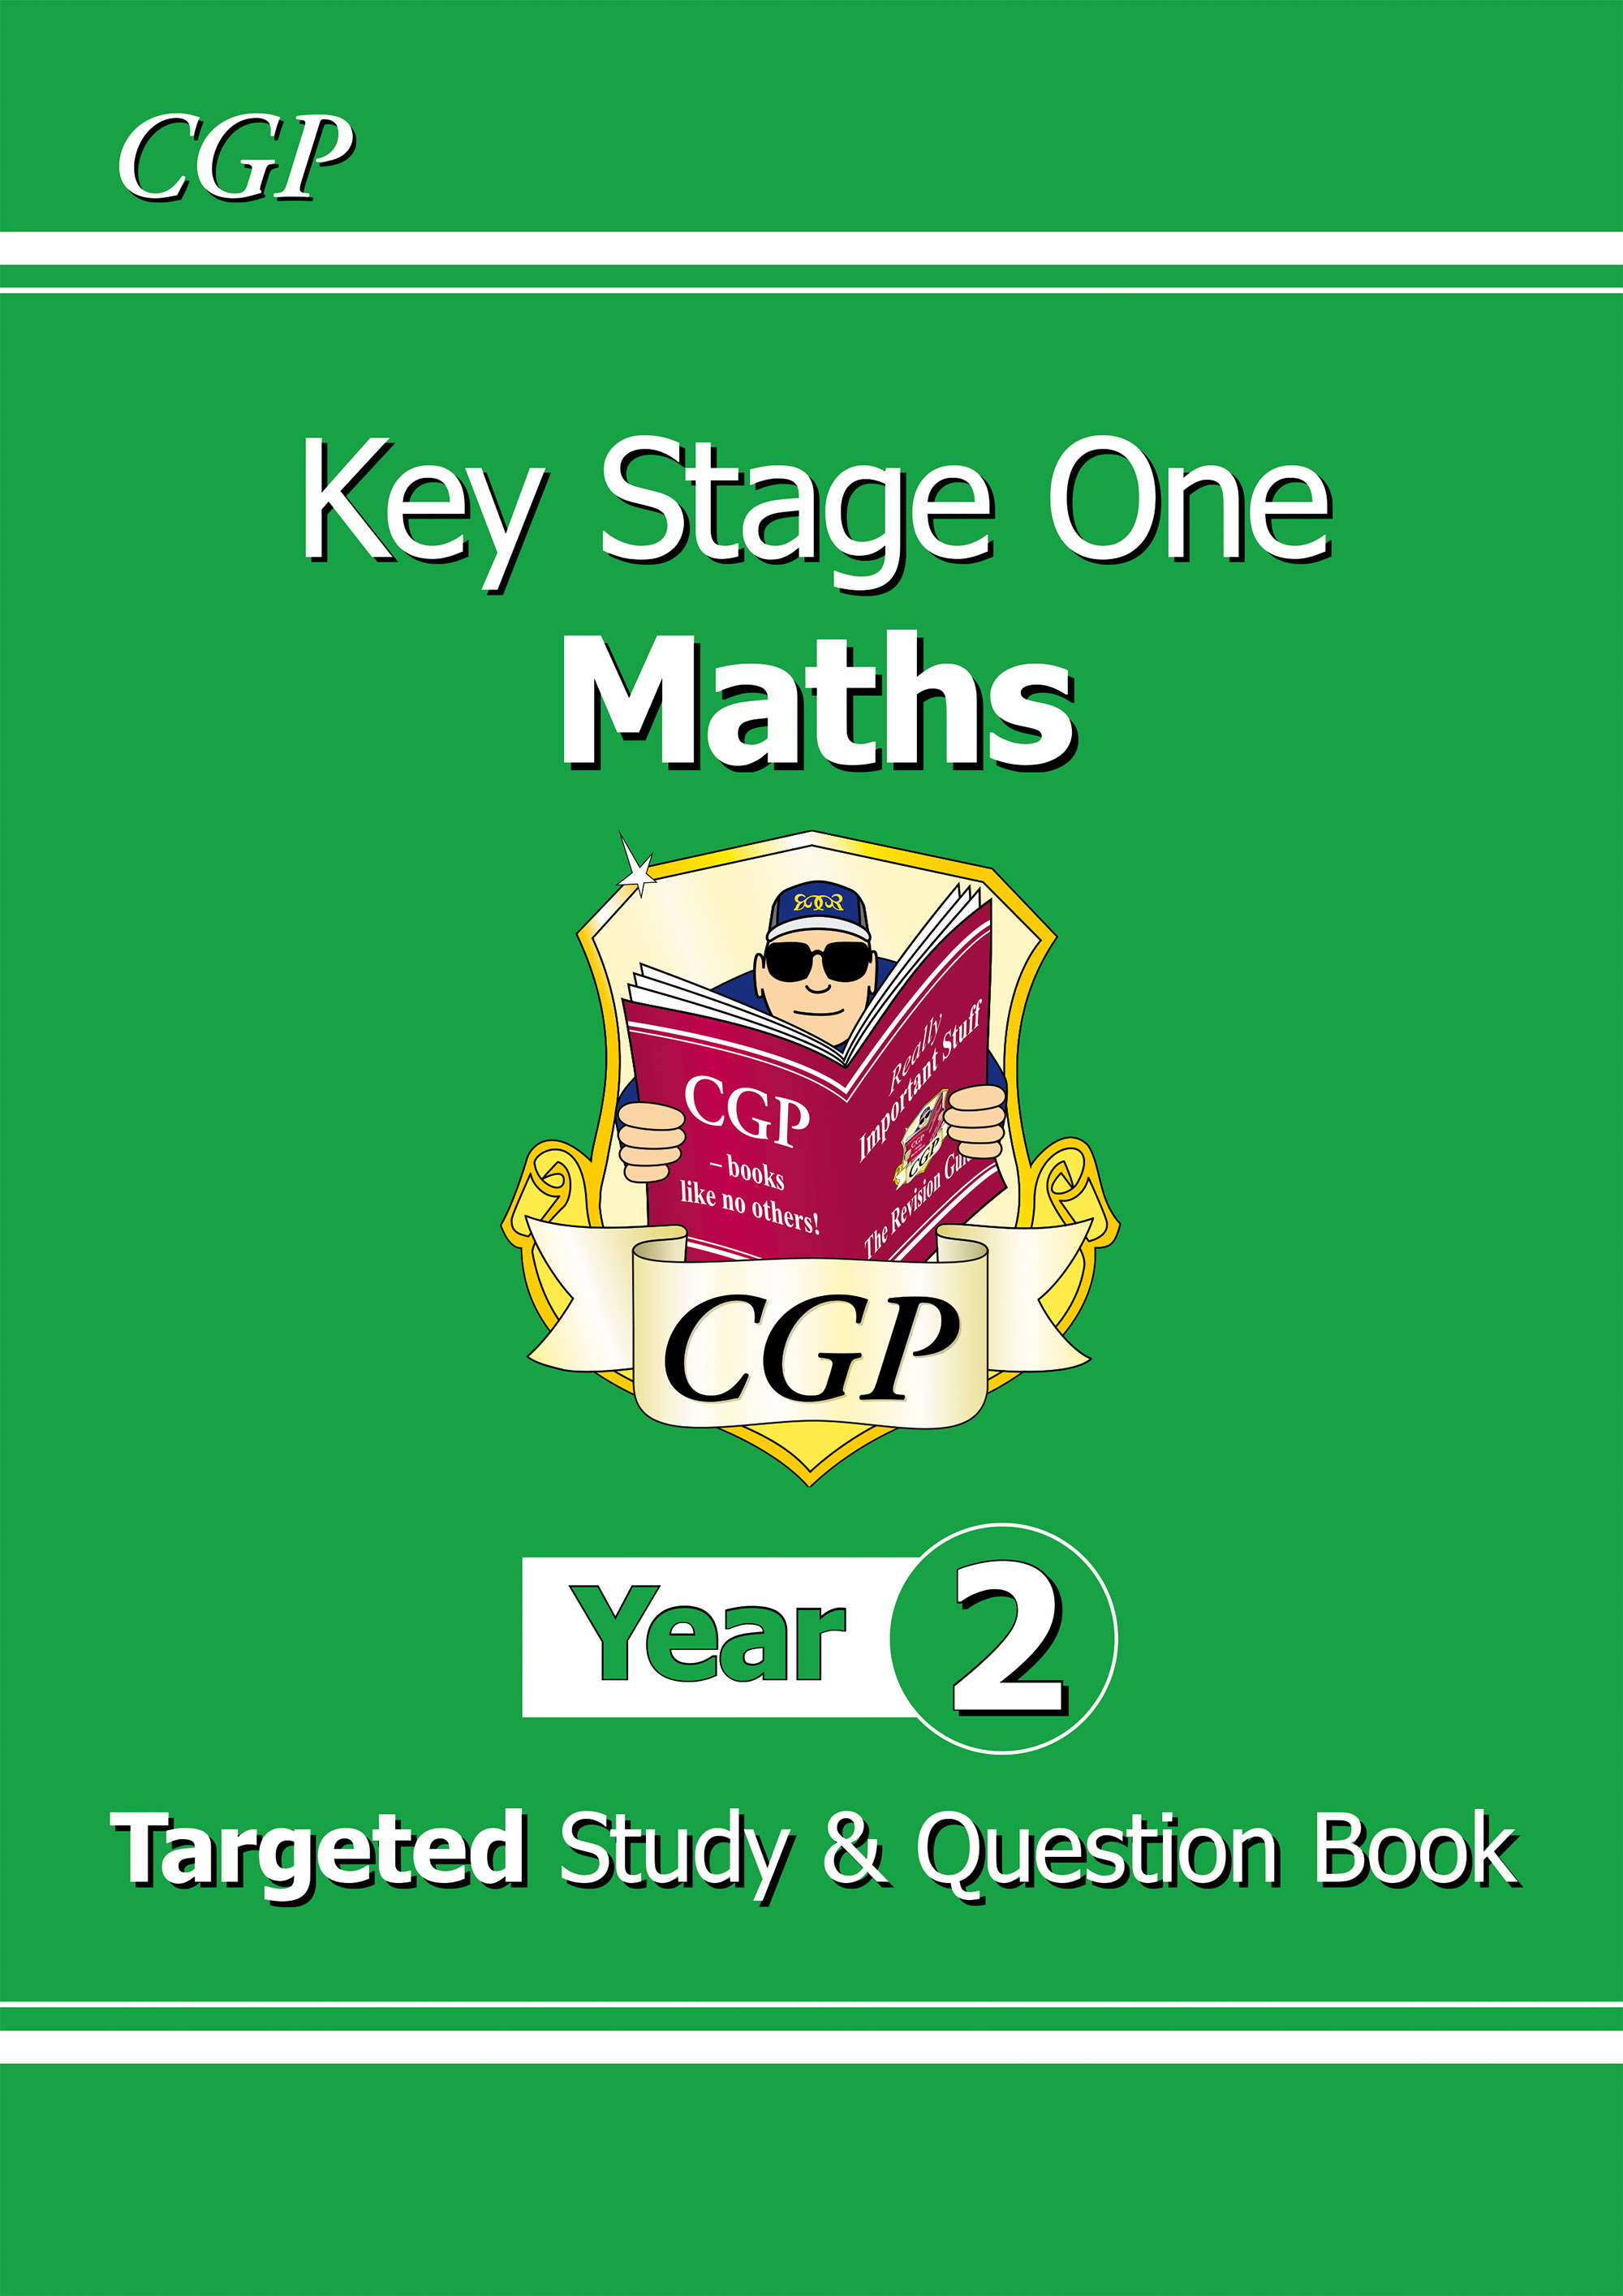 M2R11D - KS1 Maths Targeted Study & Question Book - Year 2 Online Edition